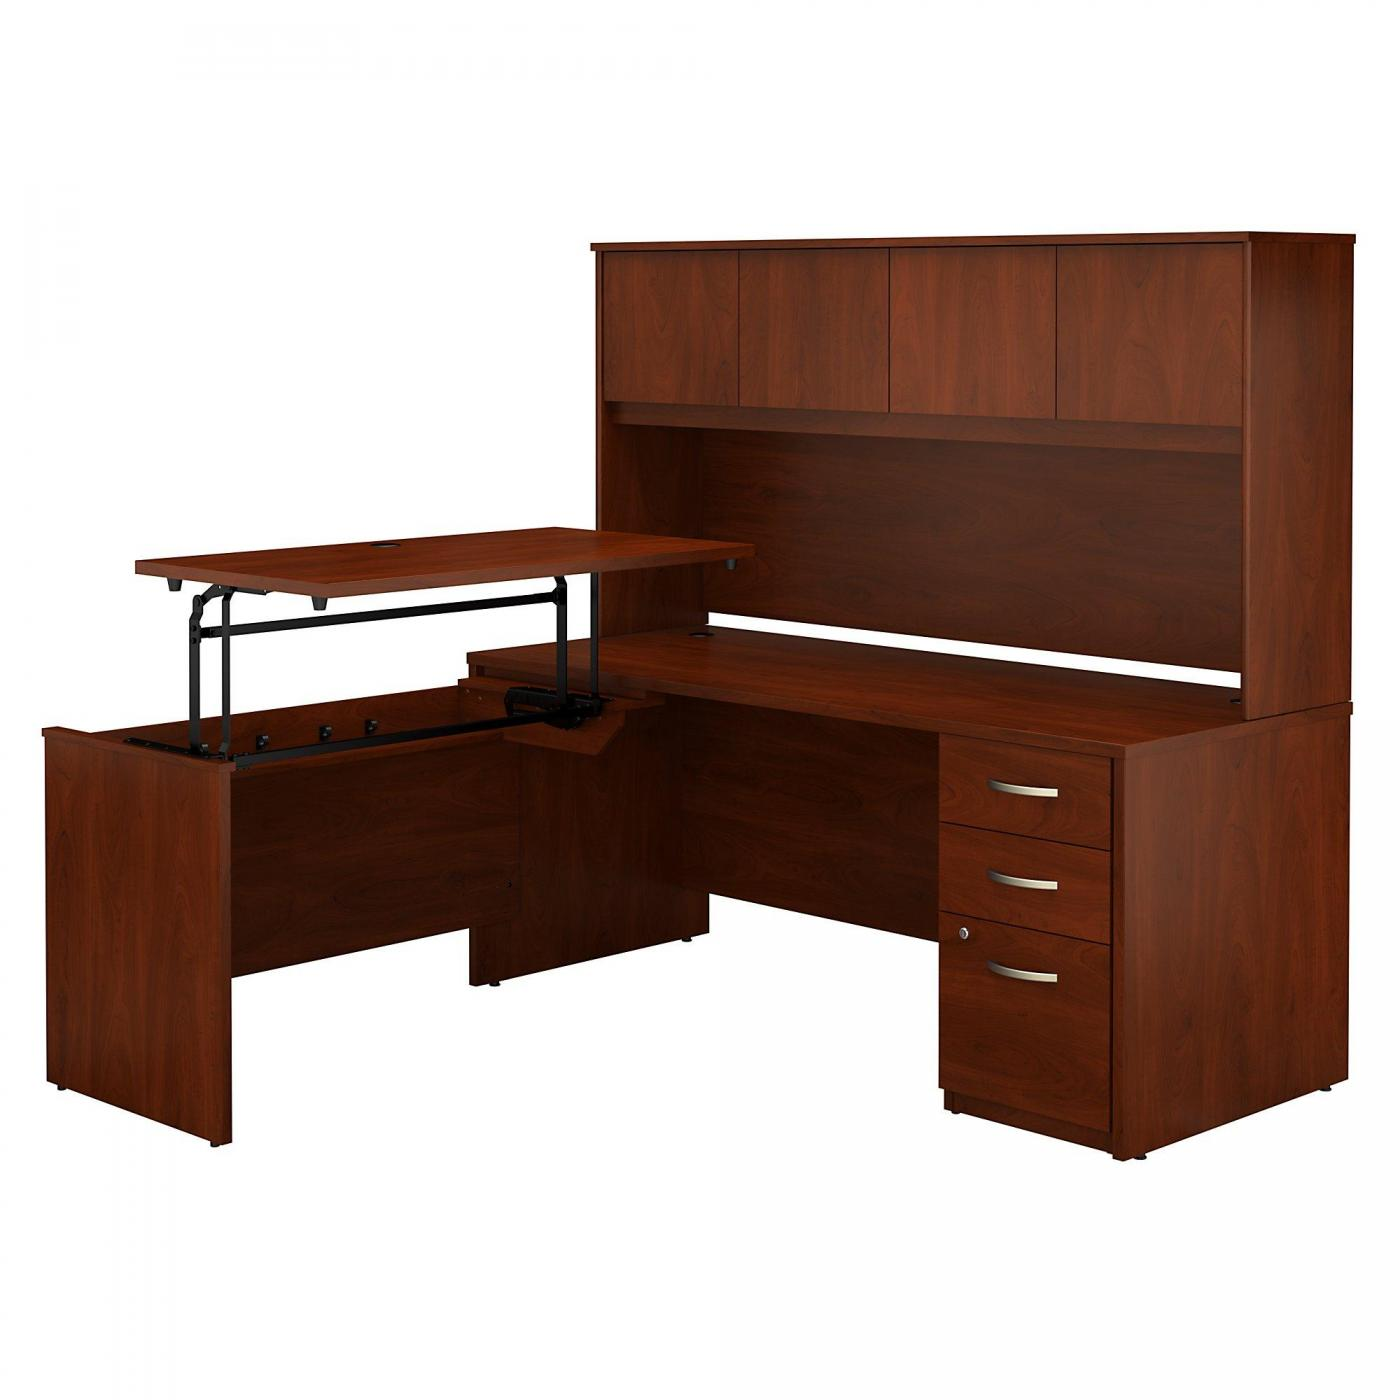 <font color=#c60><b>BUSH BUSINESS FURNITURE SERIES C ELITE 72W X 30D 3 POSITION SIT TO STAND L SHAPED DESK WITH HUTCH AND 3 DRAWER FILE CABINET. FREE SHIPPING. VIDEO:</font></b>